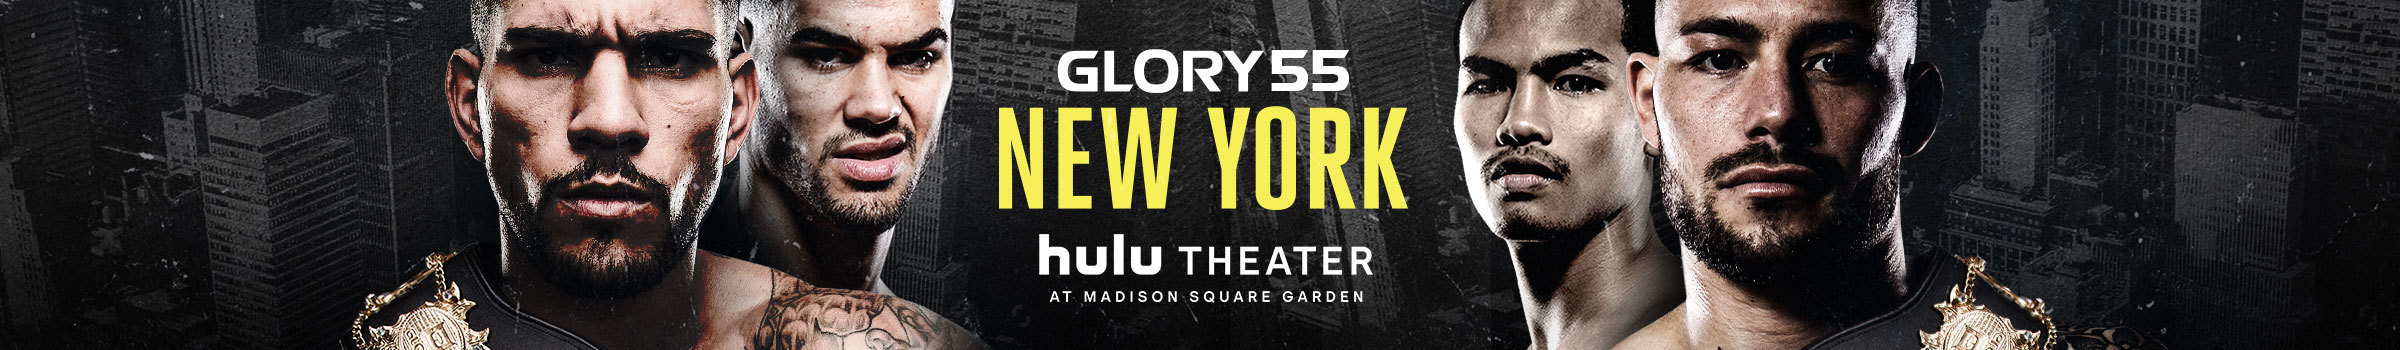 GLORY 55 New York